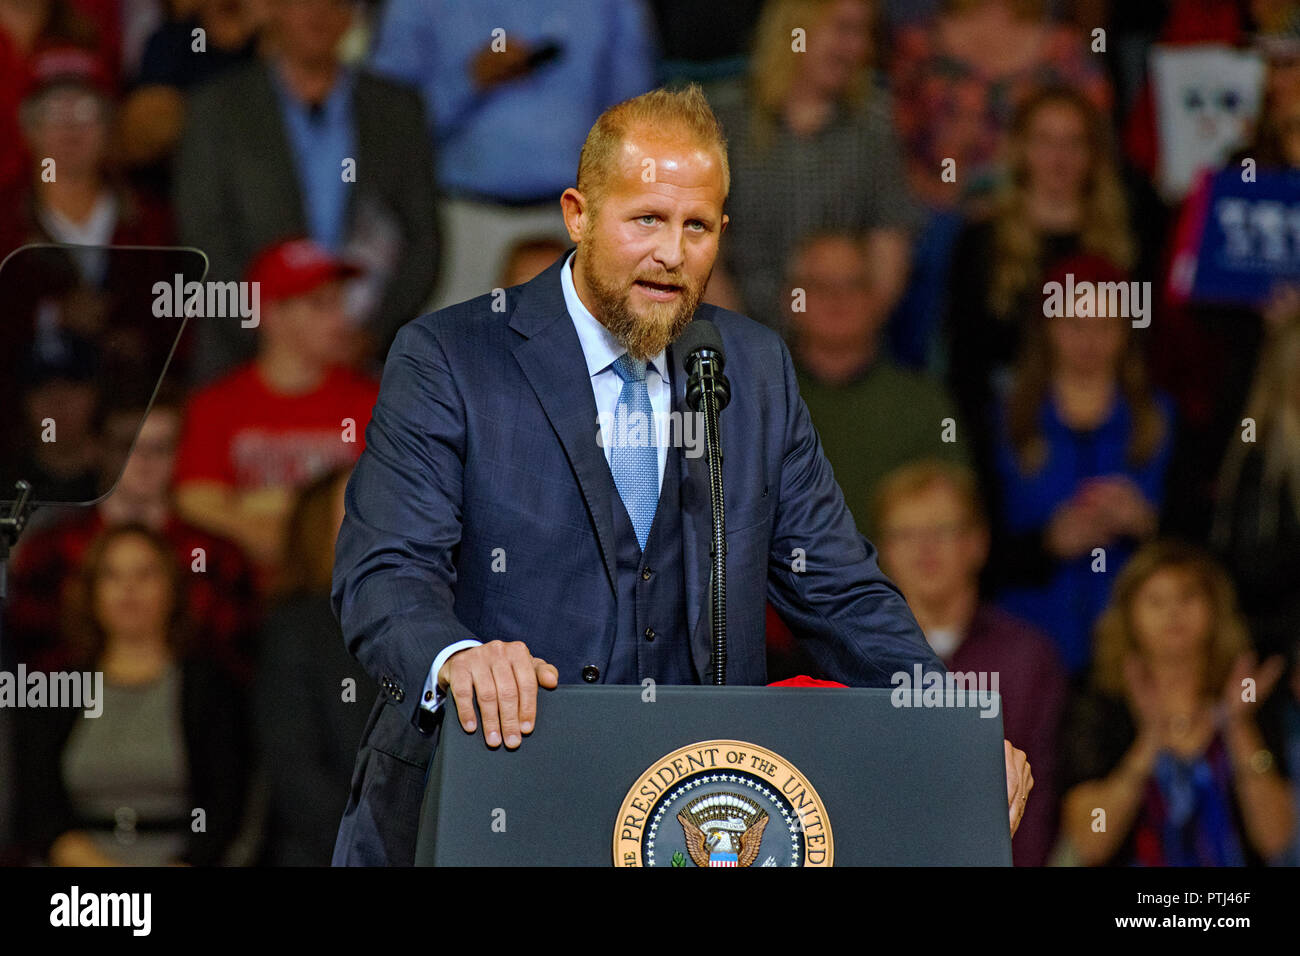 brad parscale a native kansan from topeka who was the digital media